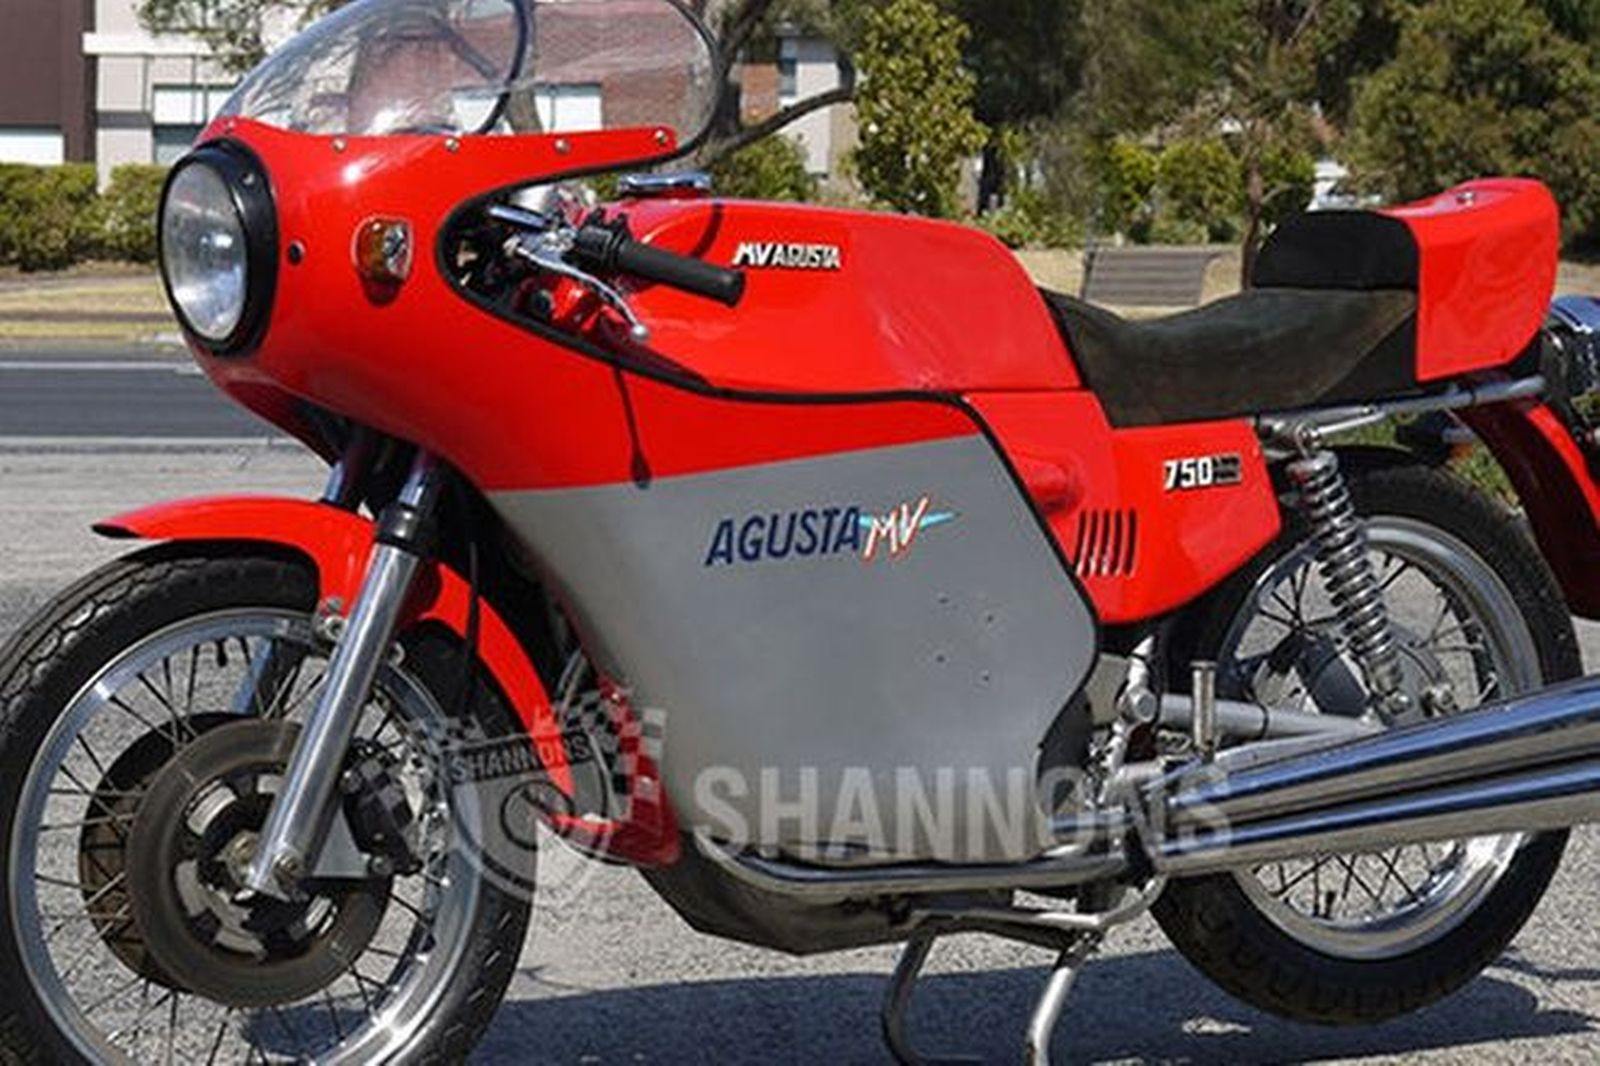 mv agusta 750s america motorcycle auctions lot 25 shannons. Black Bedroom Furniture Sets. Home Design Ideas